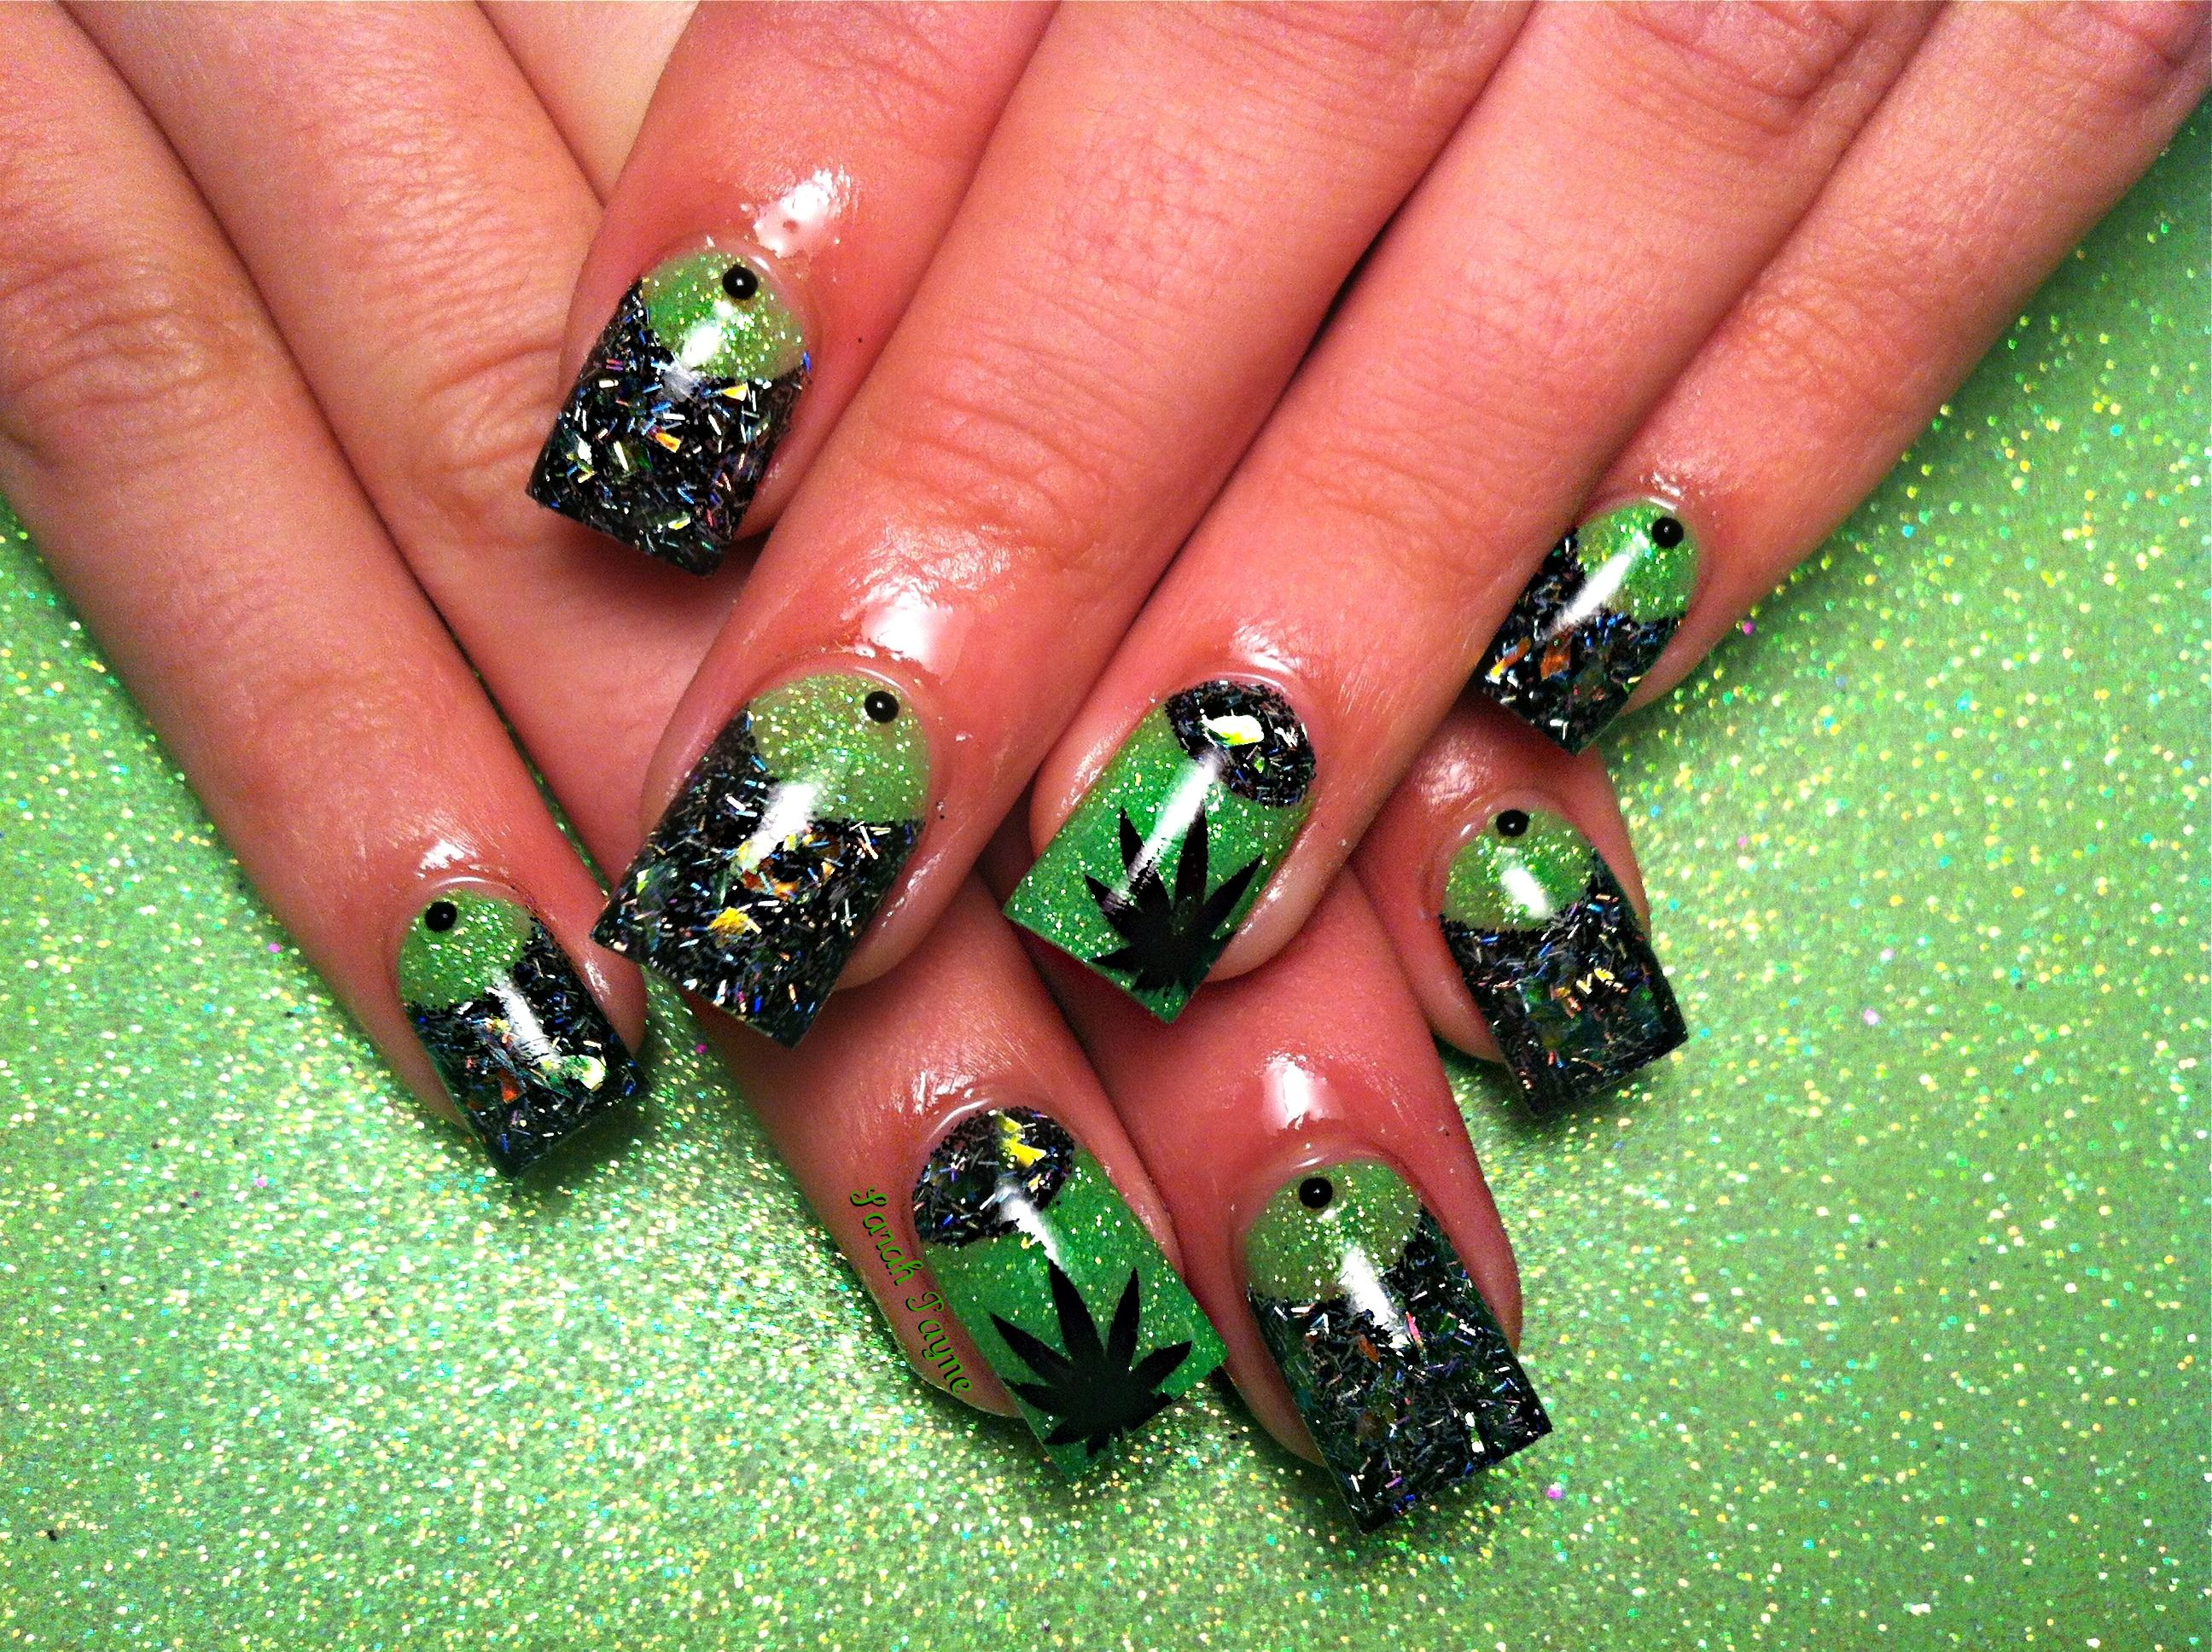 Stoner 4:20 nails | Makeup & Nails | Pinterest